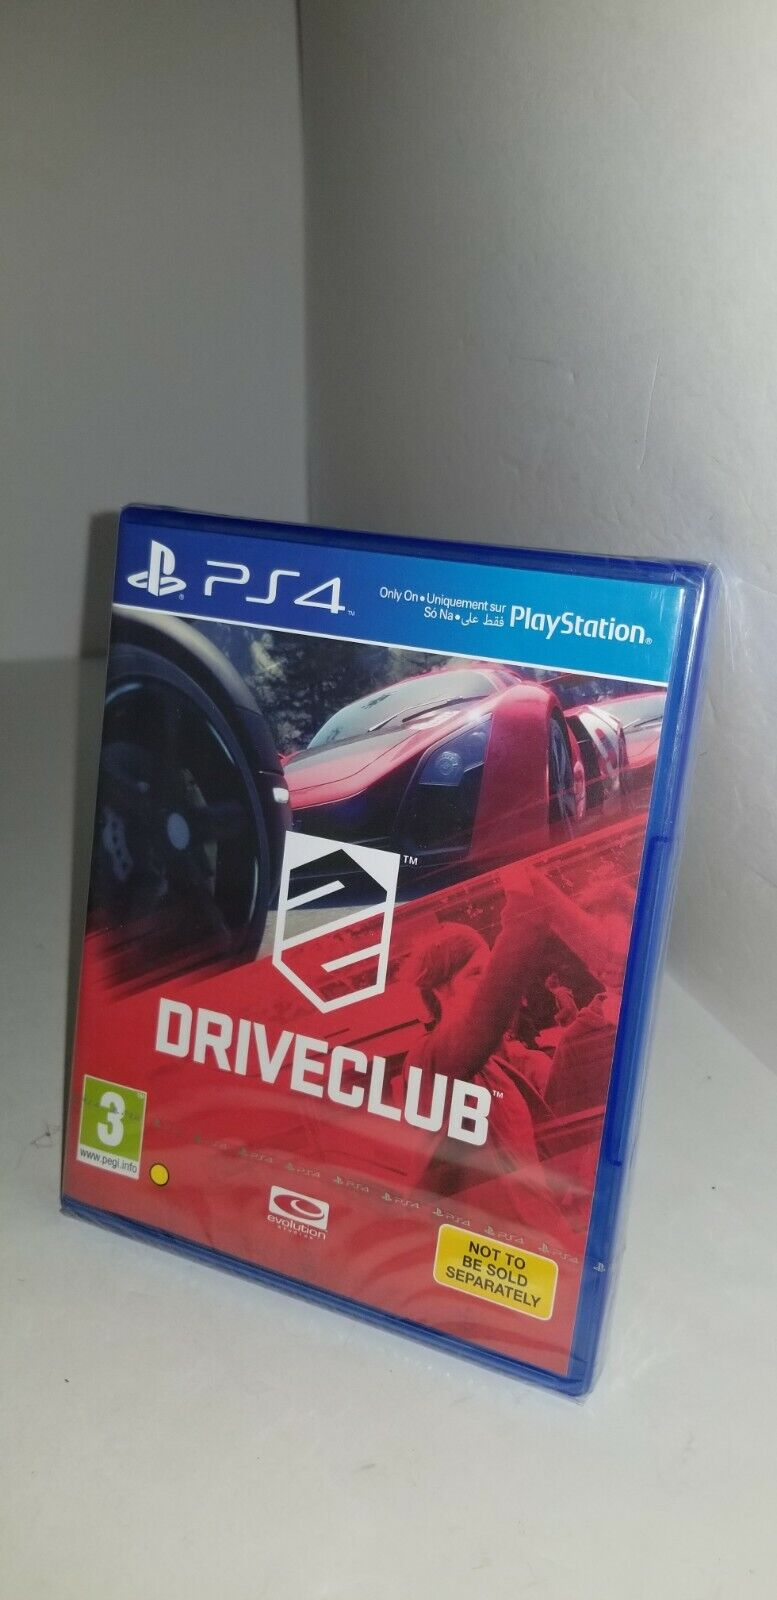 NEW DRIVE CLUB Game for PlayStation 4 PS4 REGION FREE UK FAC